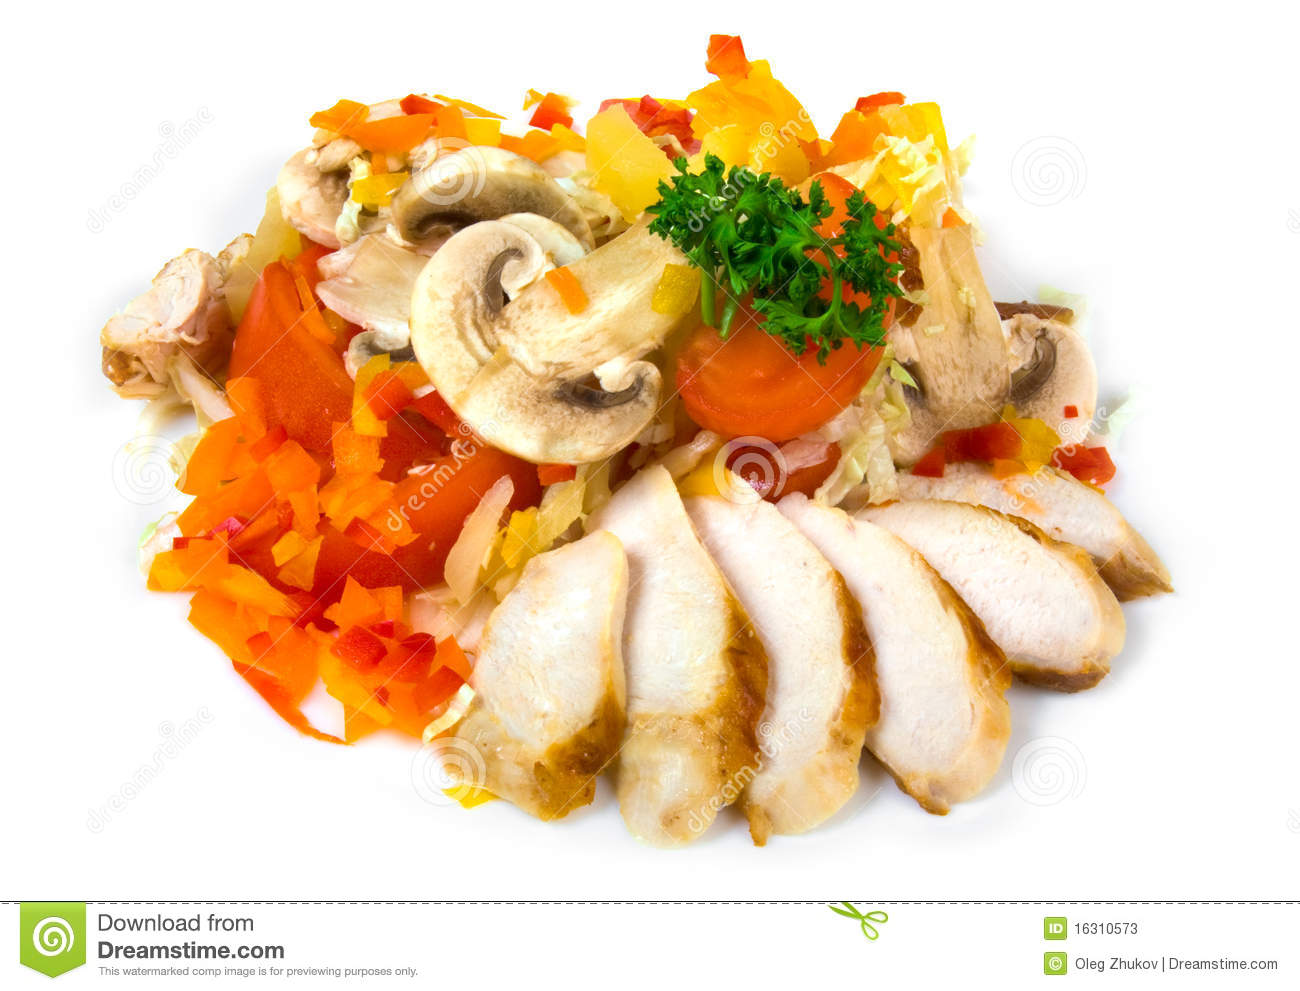 Salad with ham and mushrooms isolated on white background.